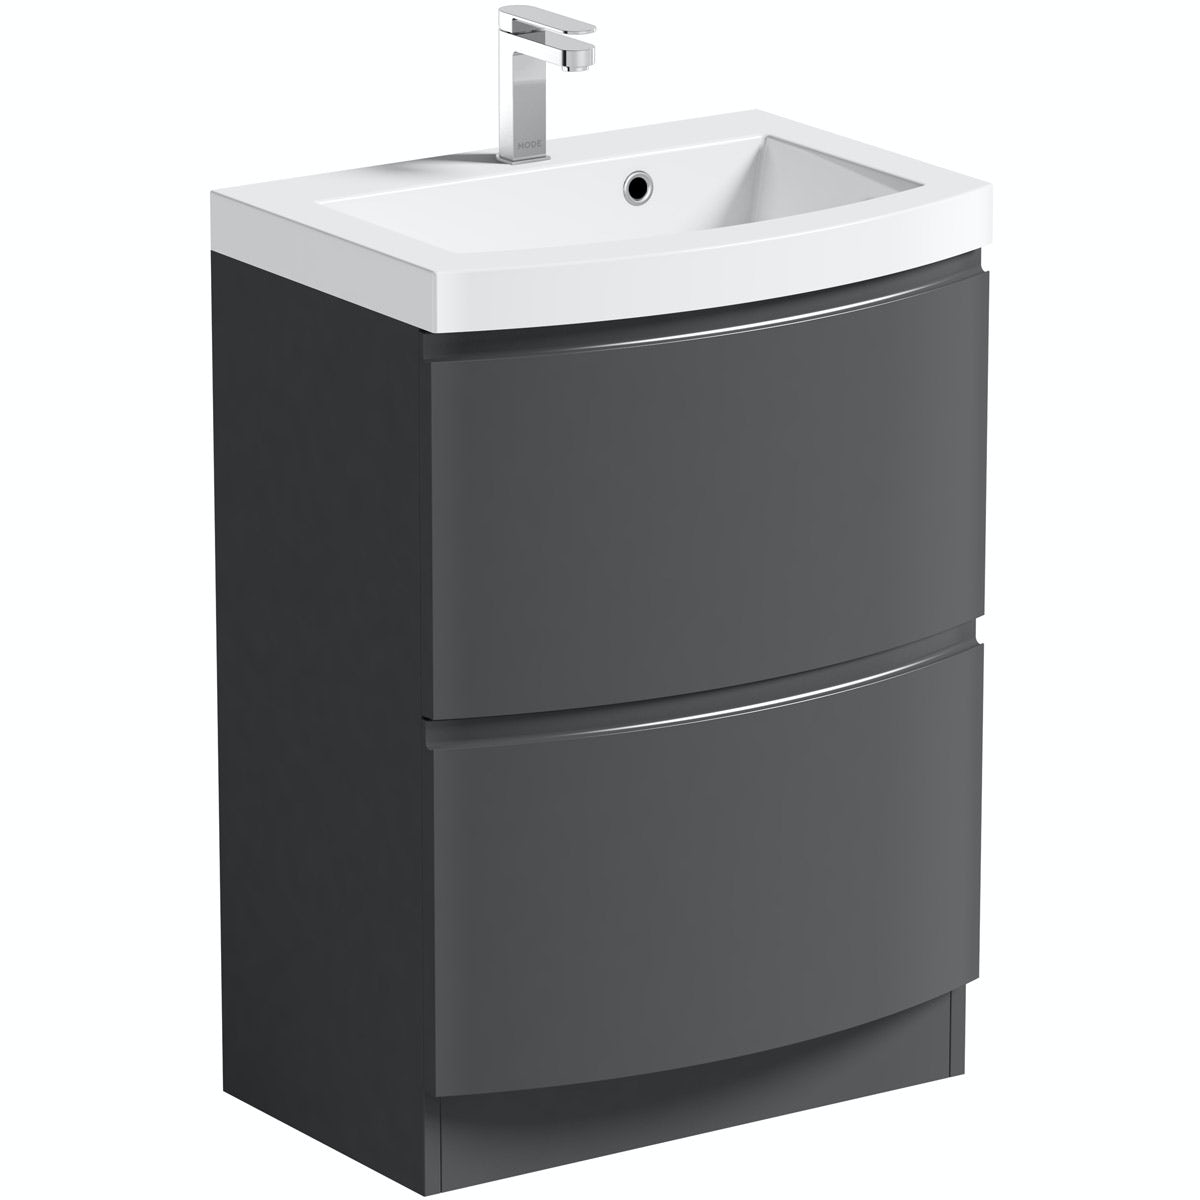 Mode Harrison slate vanity unit and basin 600mm